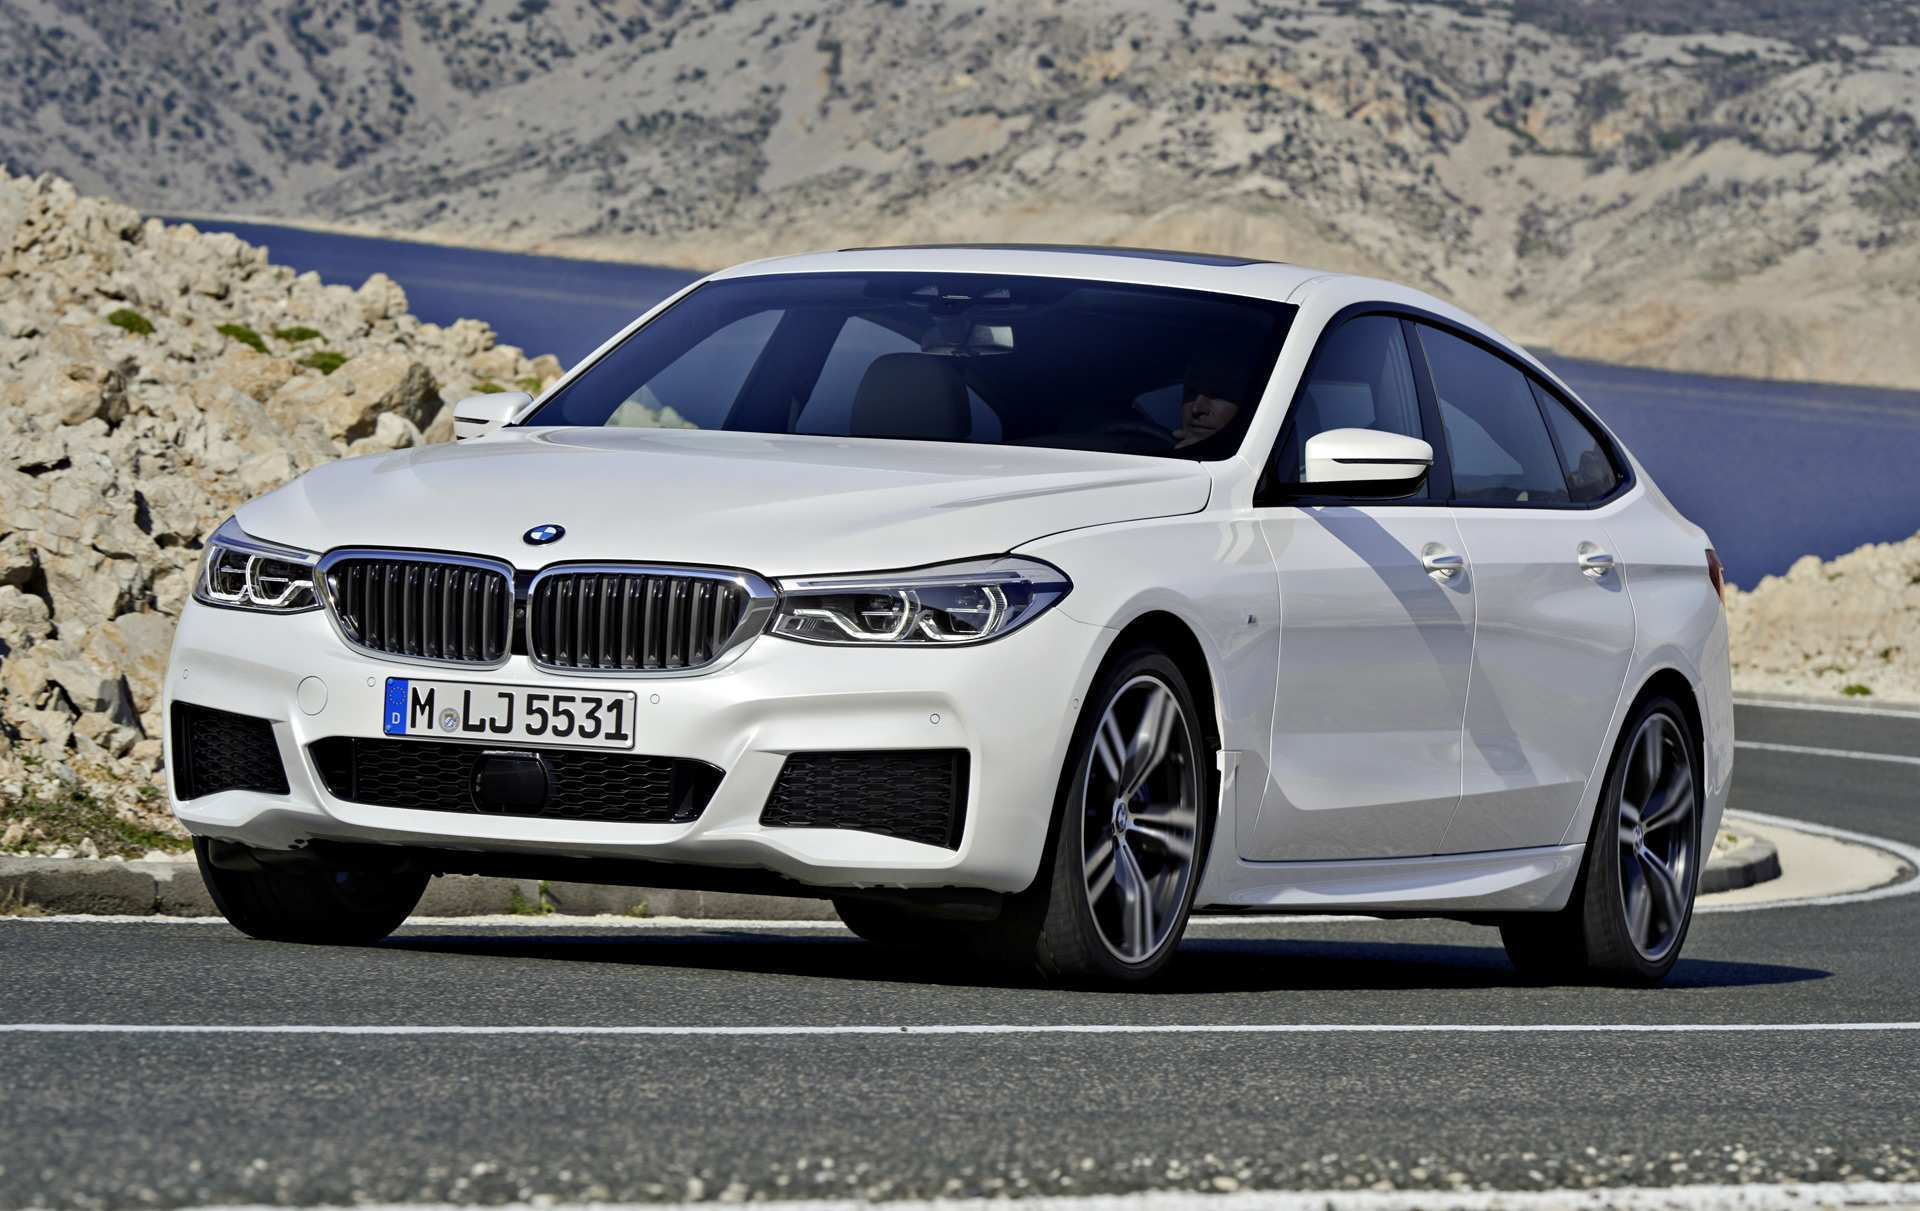 72 The Best 2020 BMW 6 Review And Release Date